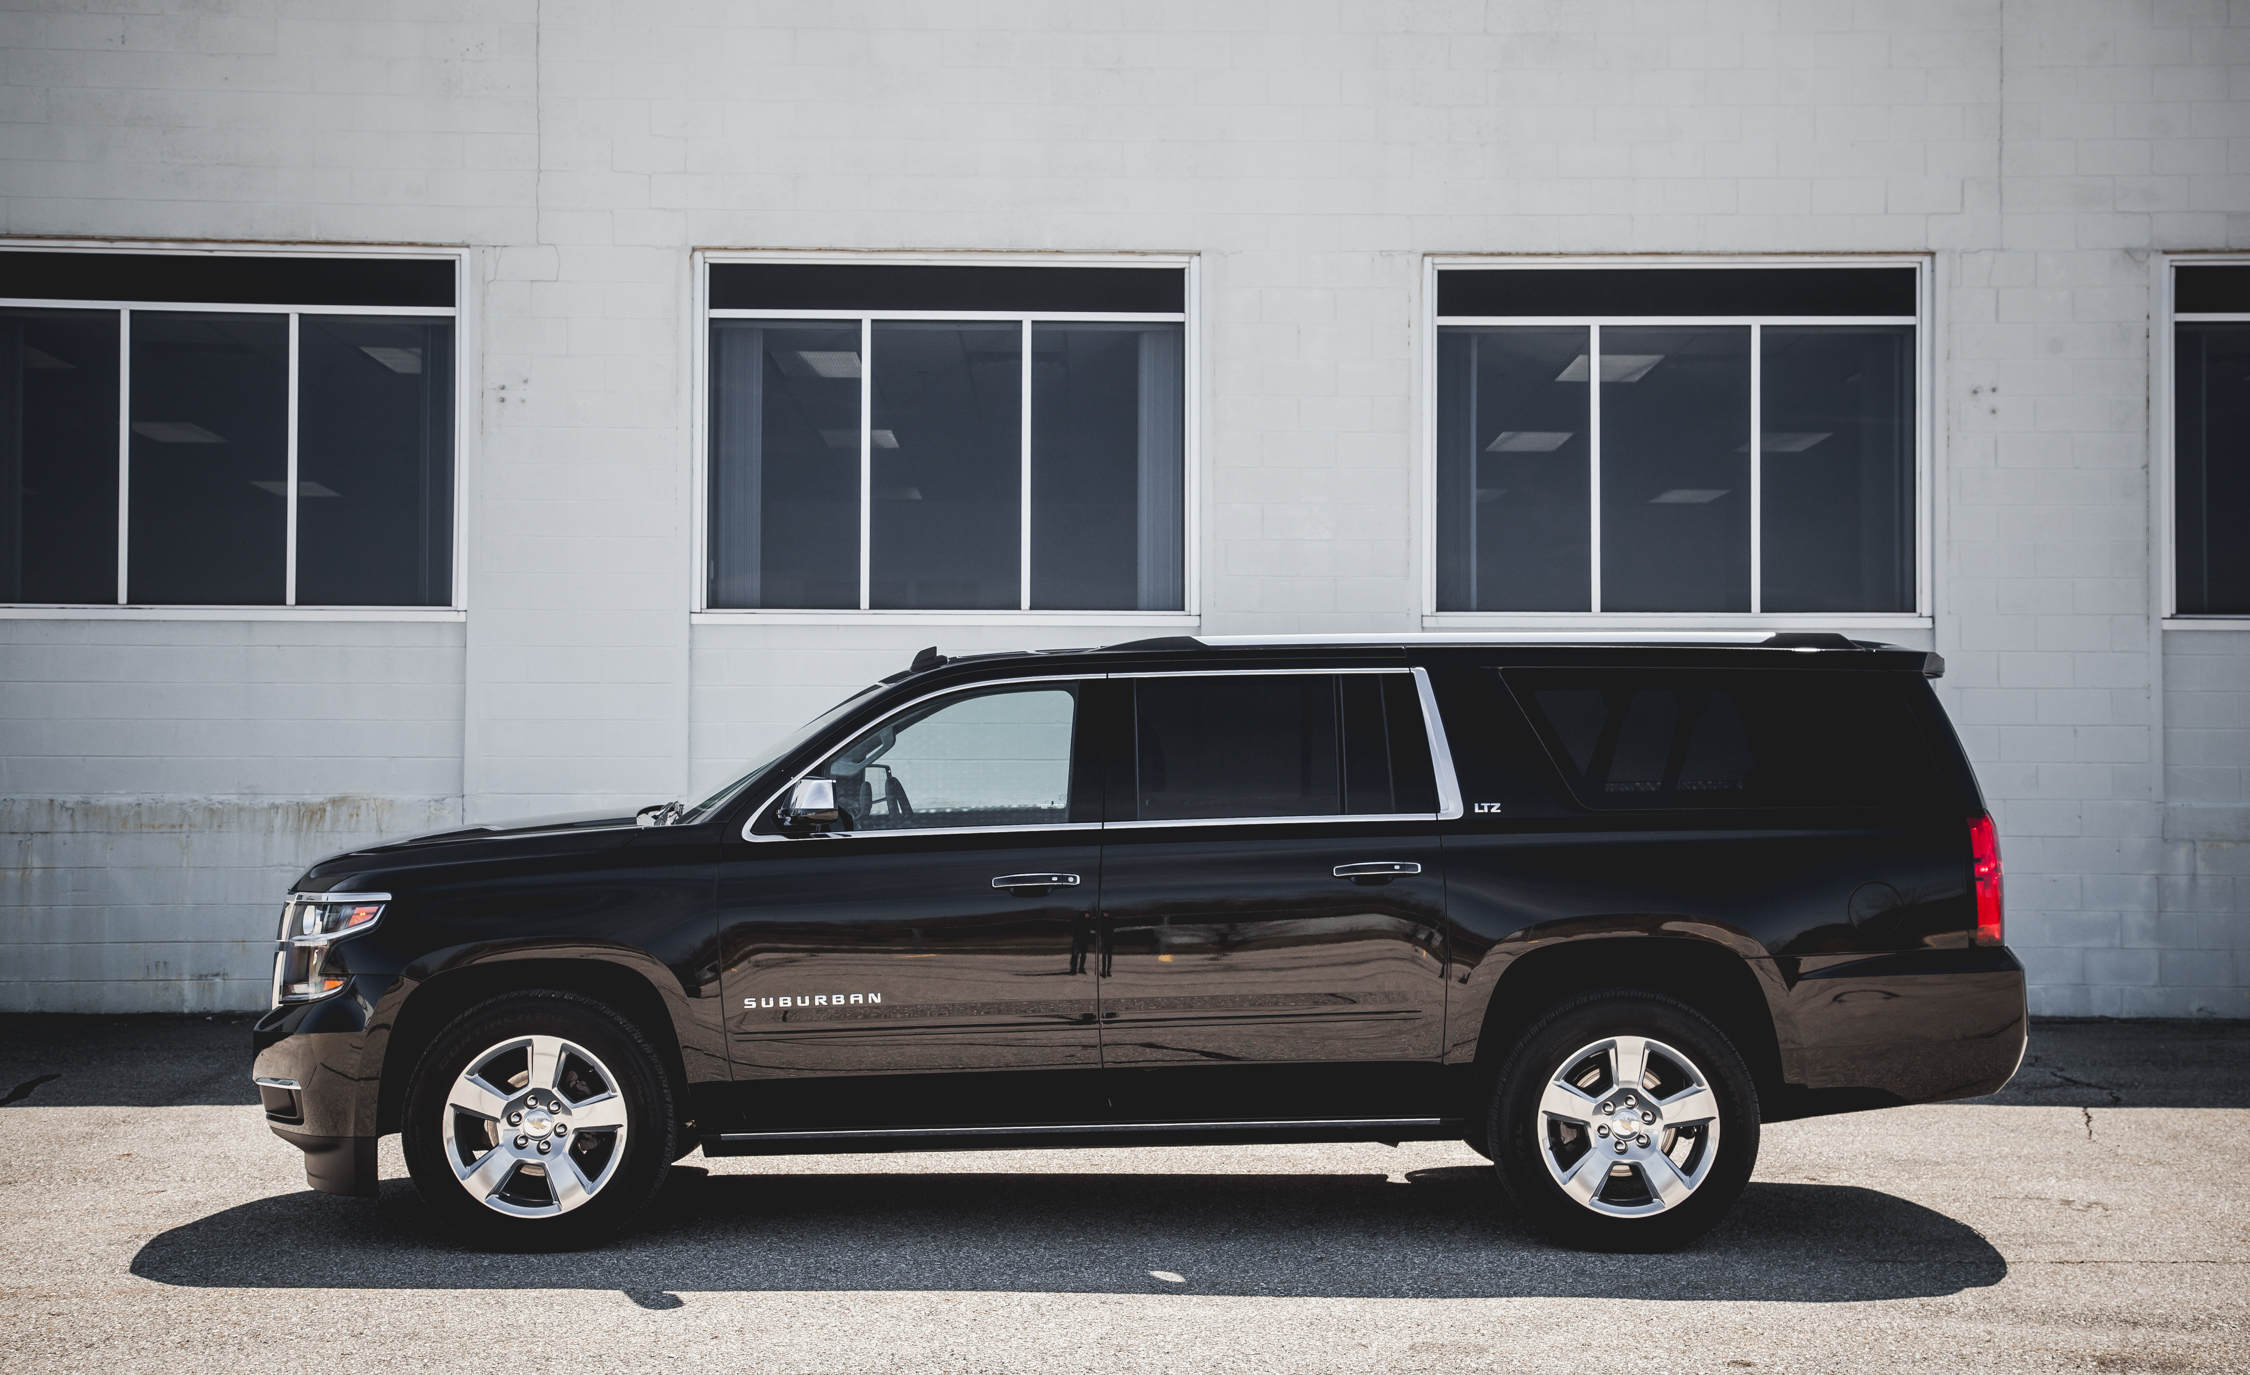 2015 Chevrolet Suburban LTZ Exterior Body Side